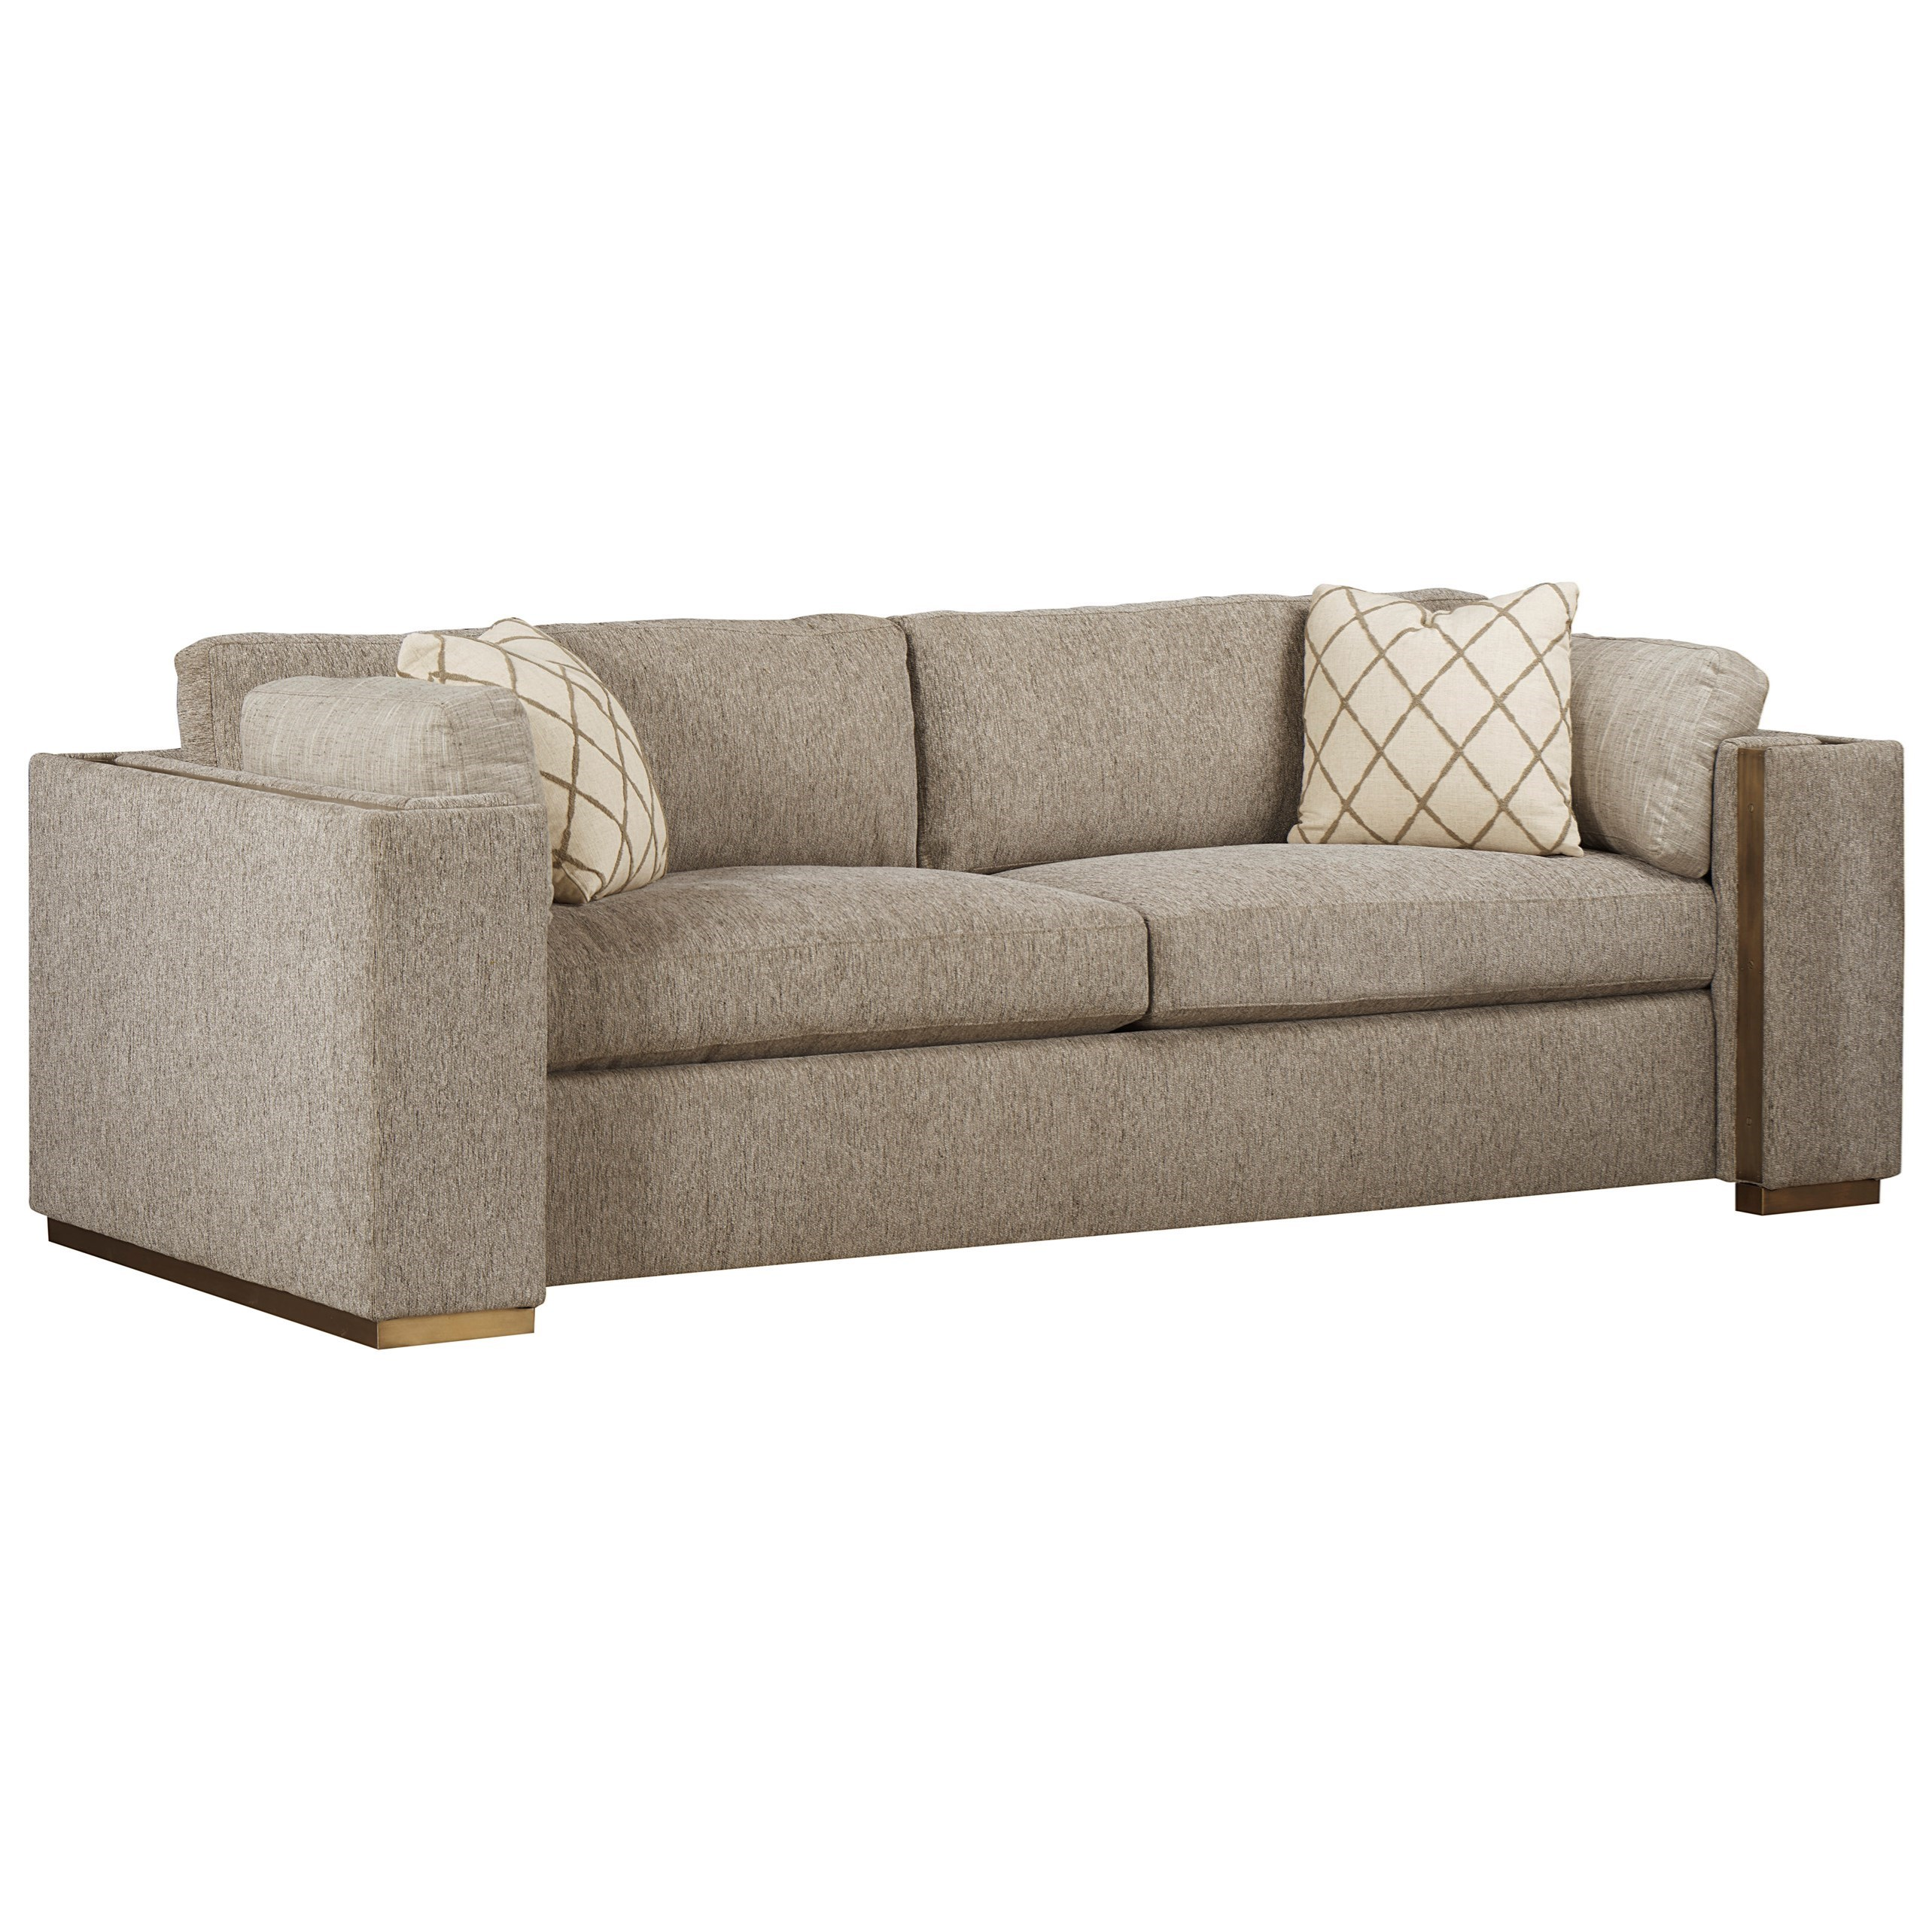 WoodWright Upholstery Sofa by A.R.T. Furniture Inc at Home Collections Furniture